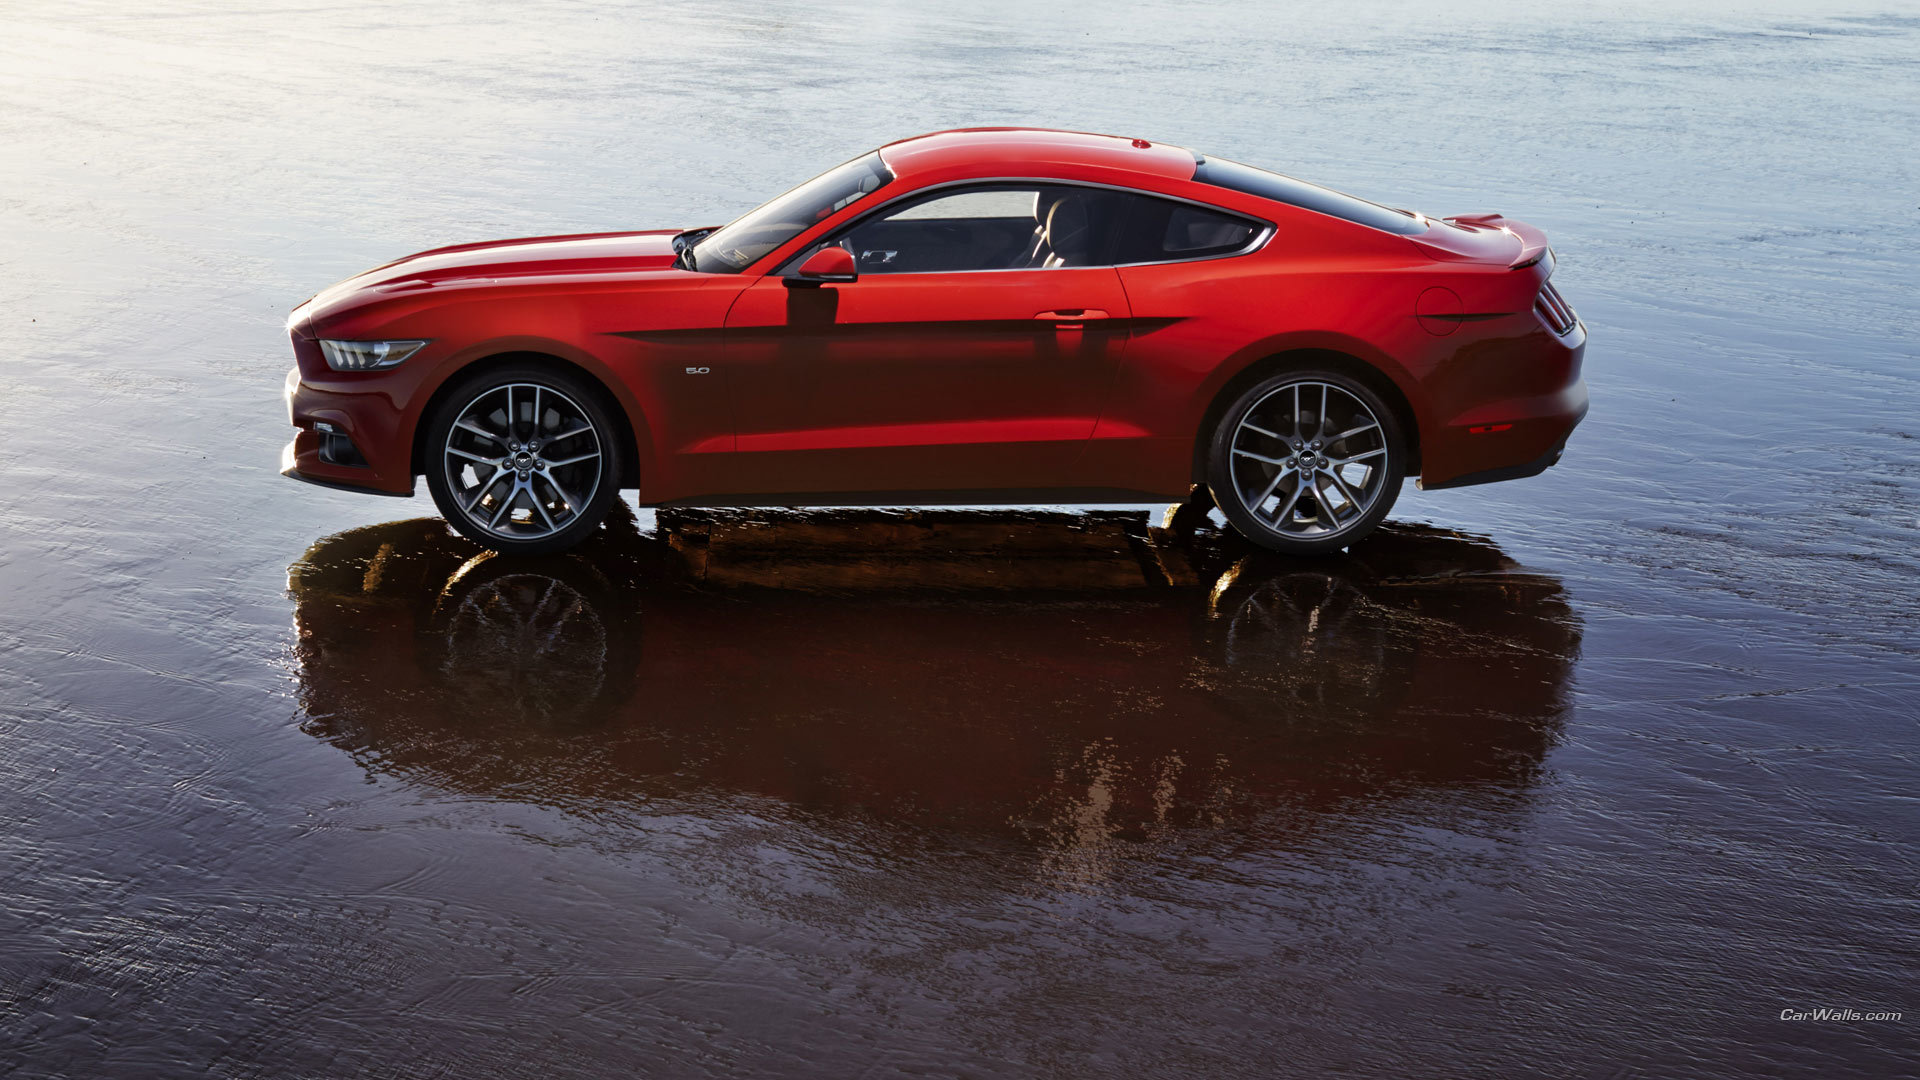 Best Ford Mustang Gt 2015 Wallpaper Id 443581 For High Resolution